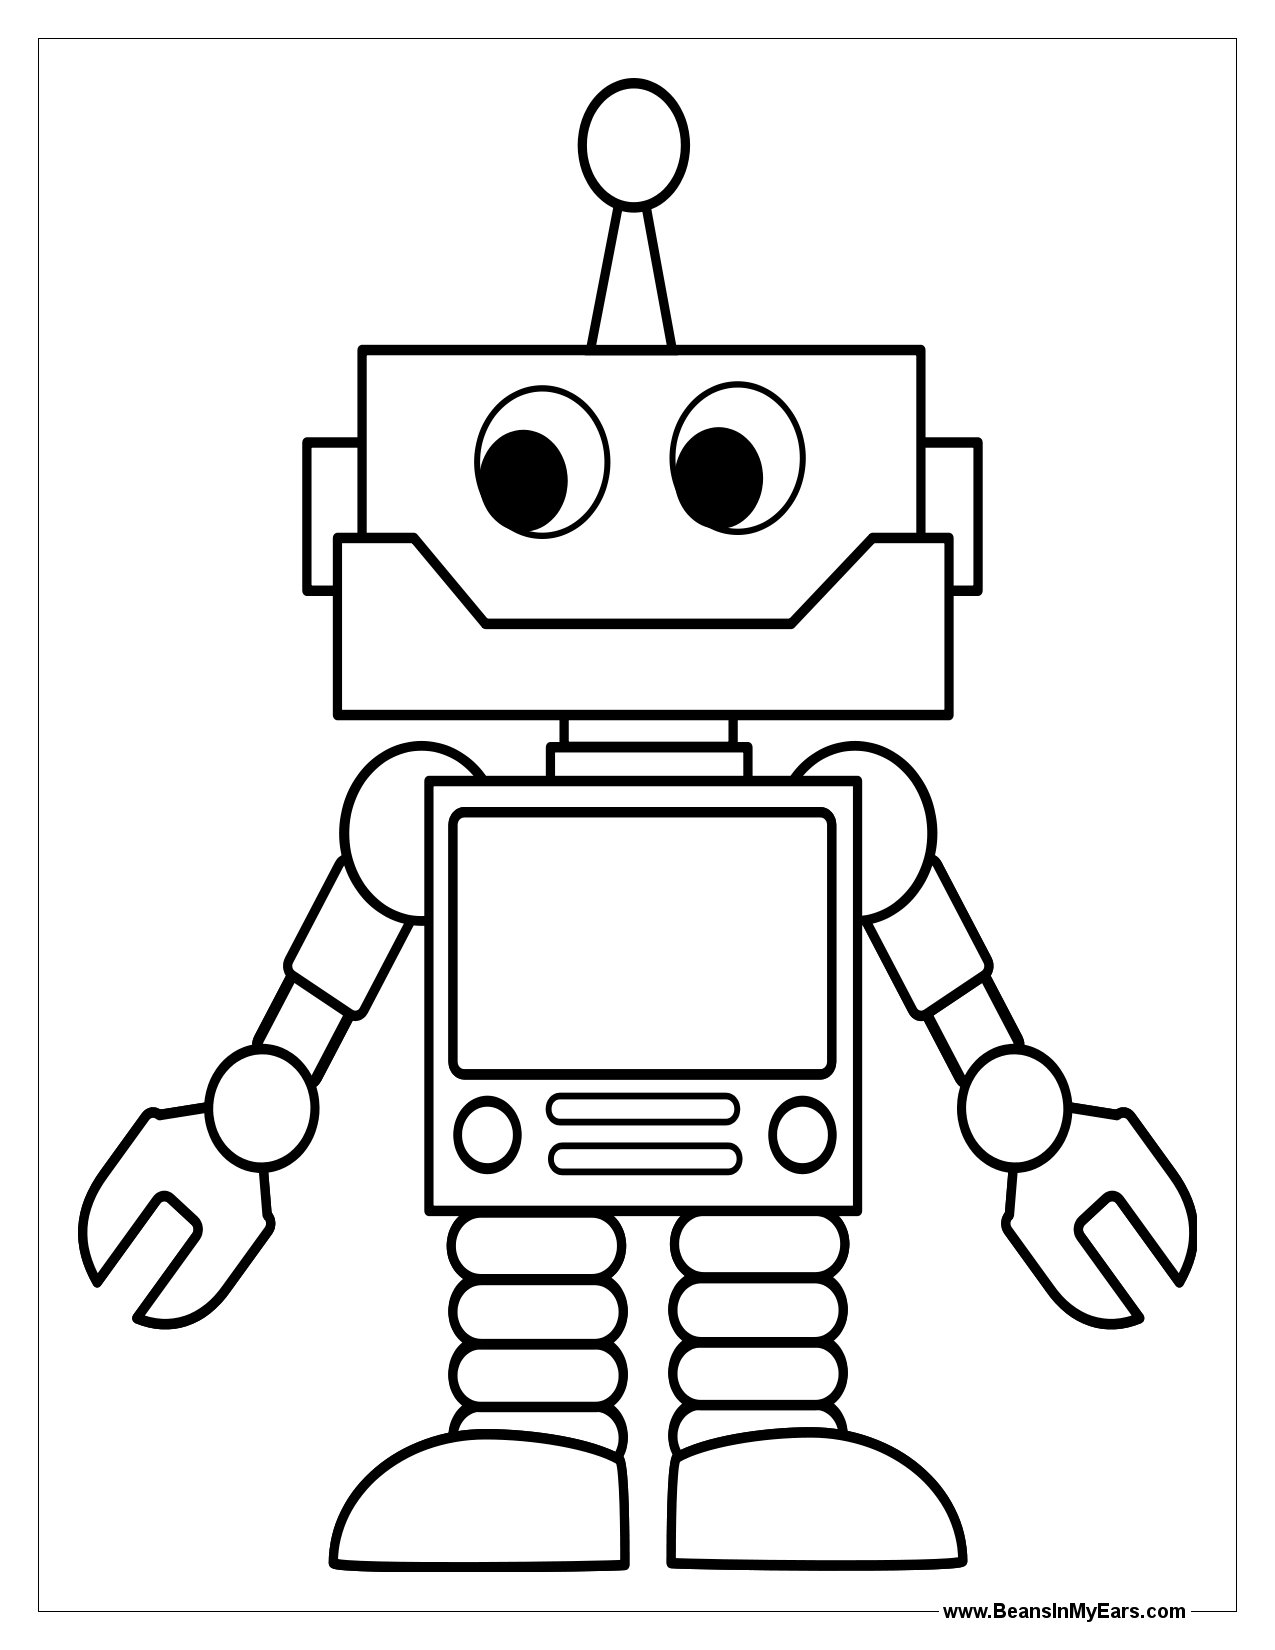 coloring sheet robot coloring pages cool robot coloring pages at getcoloringscom free coloring coloring sheet robot pages